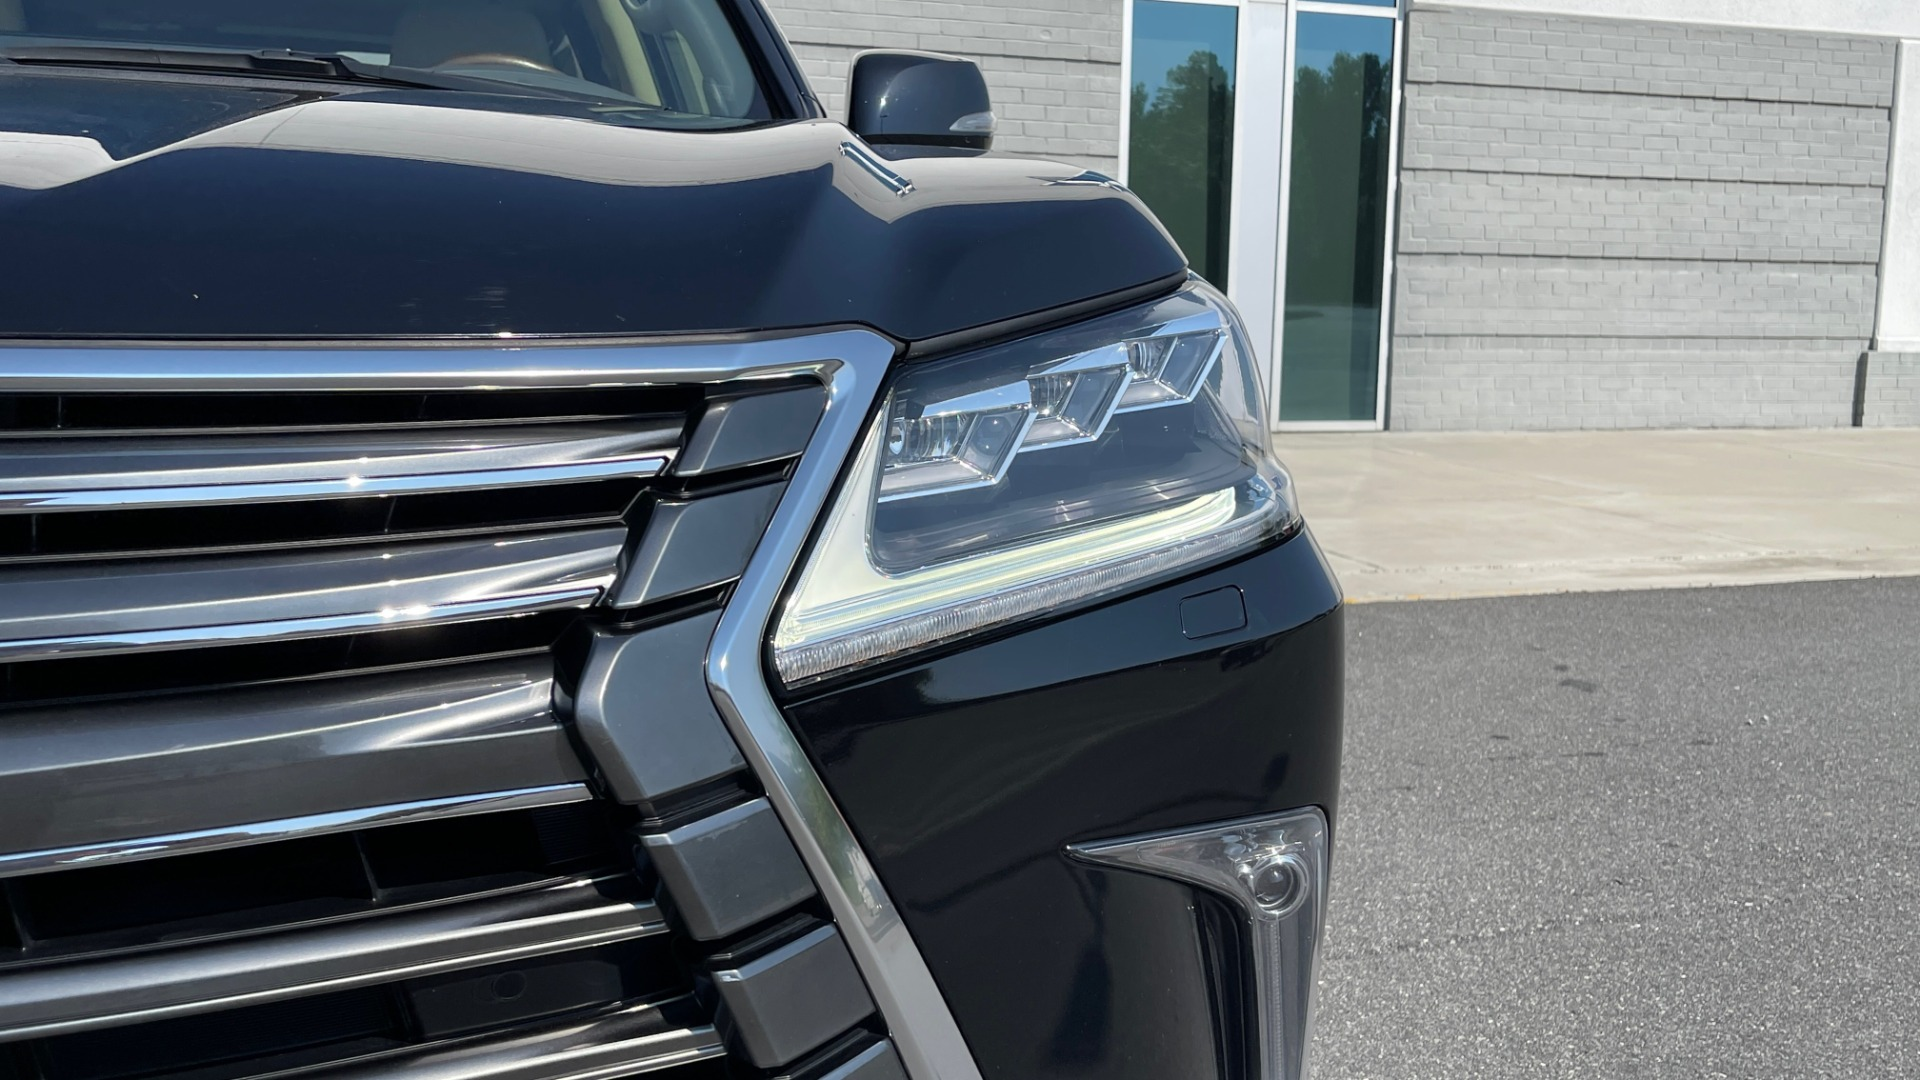 Used 2017 Lexus LX 570 LUXURY / 5.7L V8 / NAV / SUNROOF / 3-ROW / DVD / REARVIEW for sale $63,995 at Formula Imports in Charlotte NC 28227 11